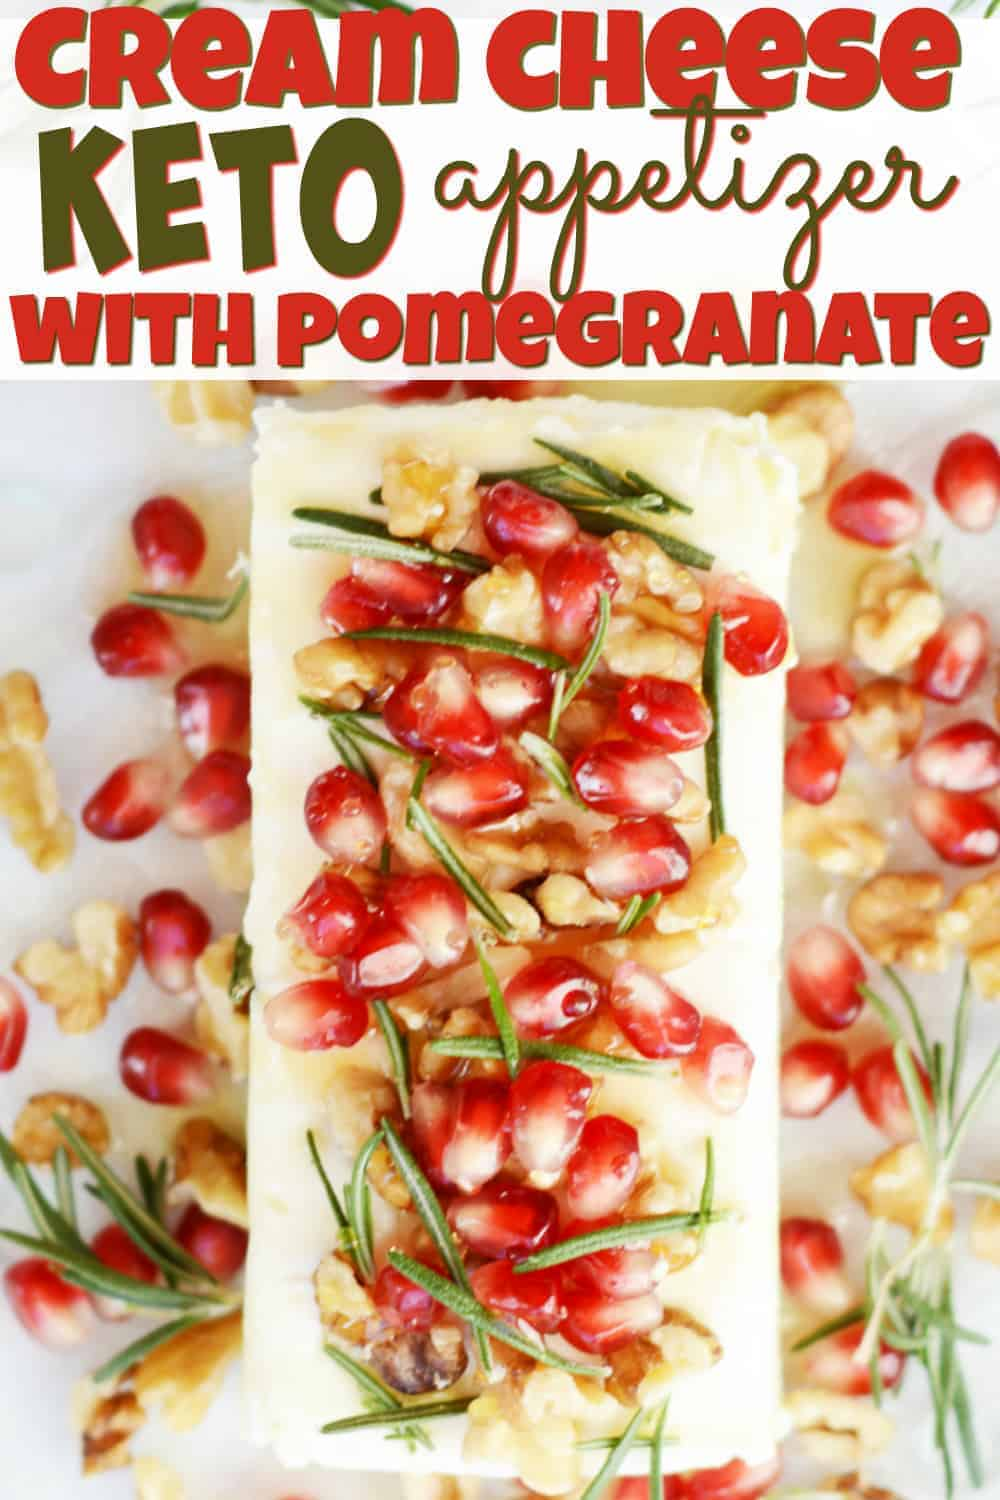 A close up of food, with Cheese and Pomegranate